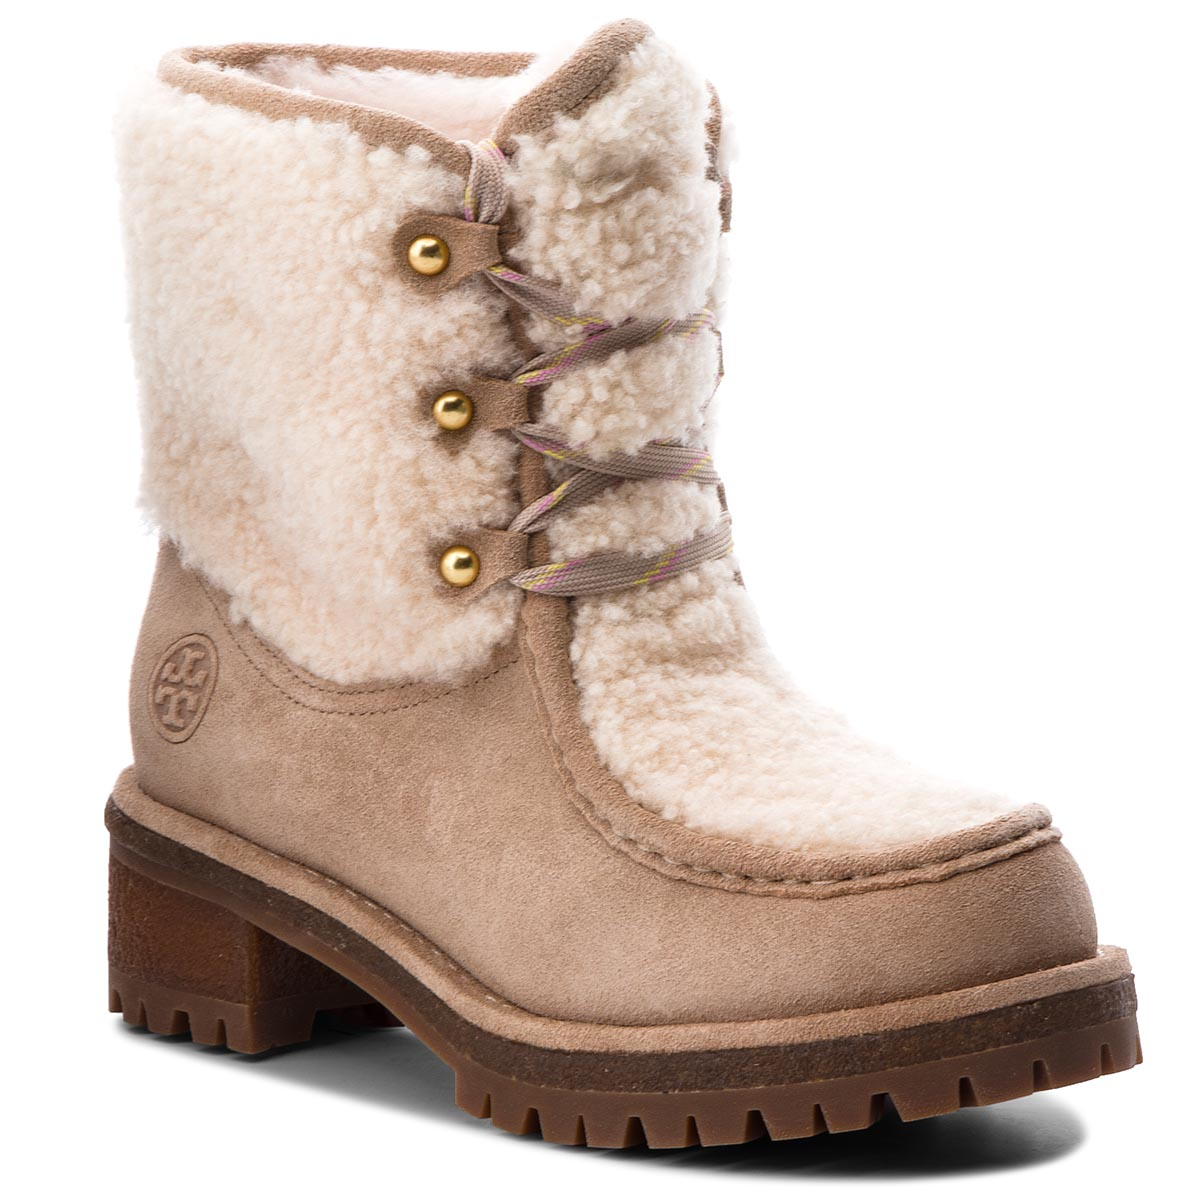 Trappers TORY BURCH - Meadow Boot 49197 Perfect Sand/Natural 256